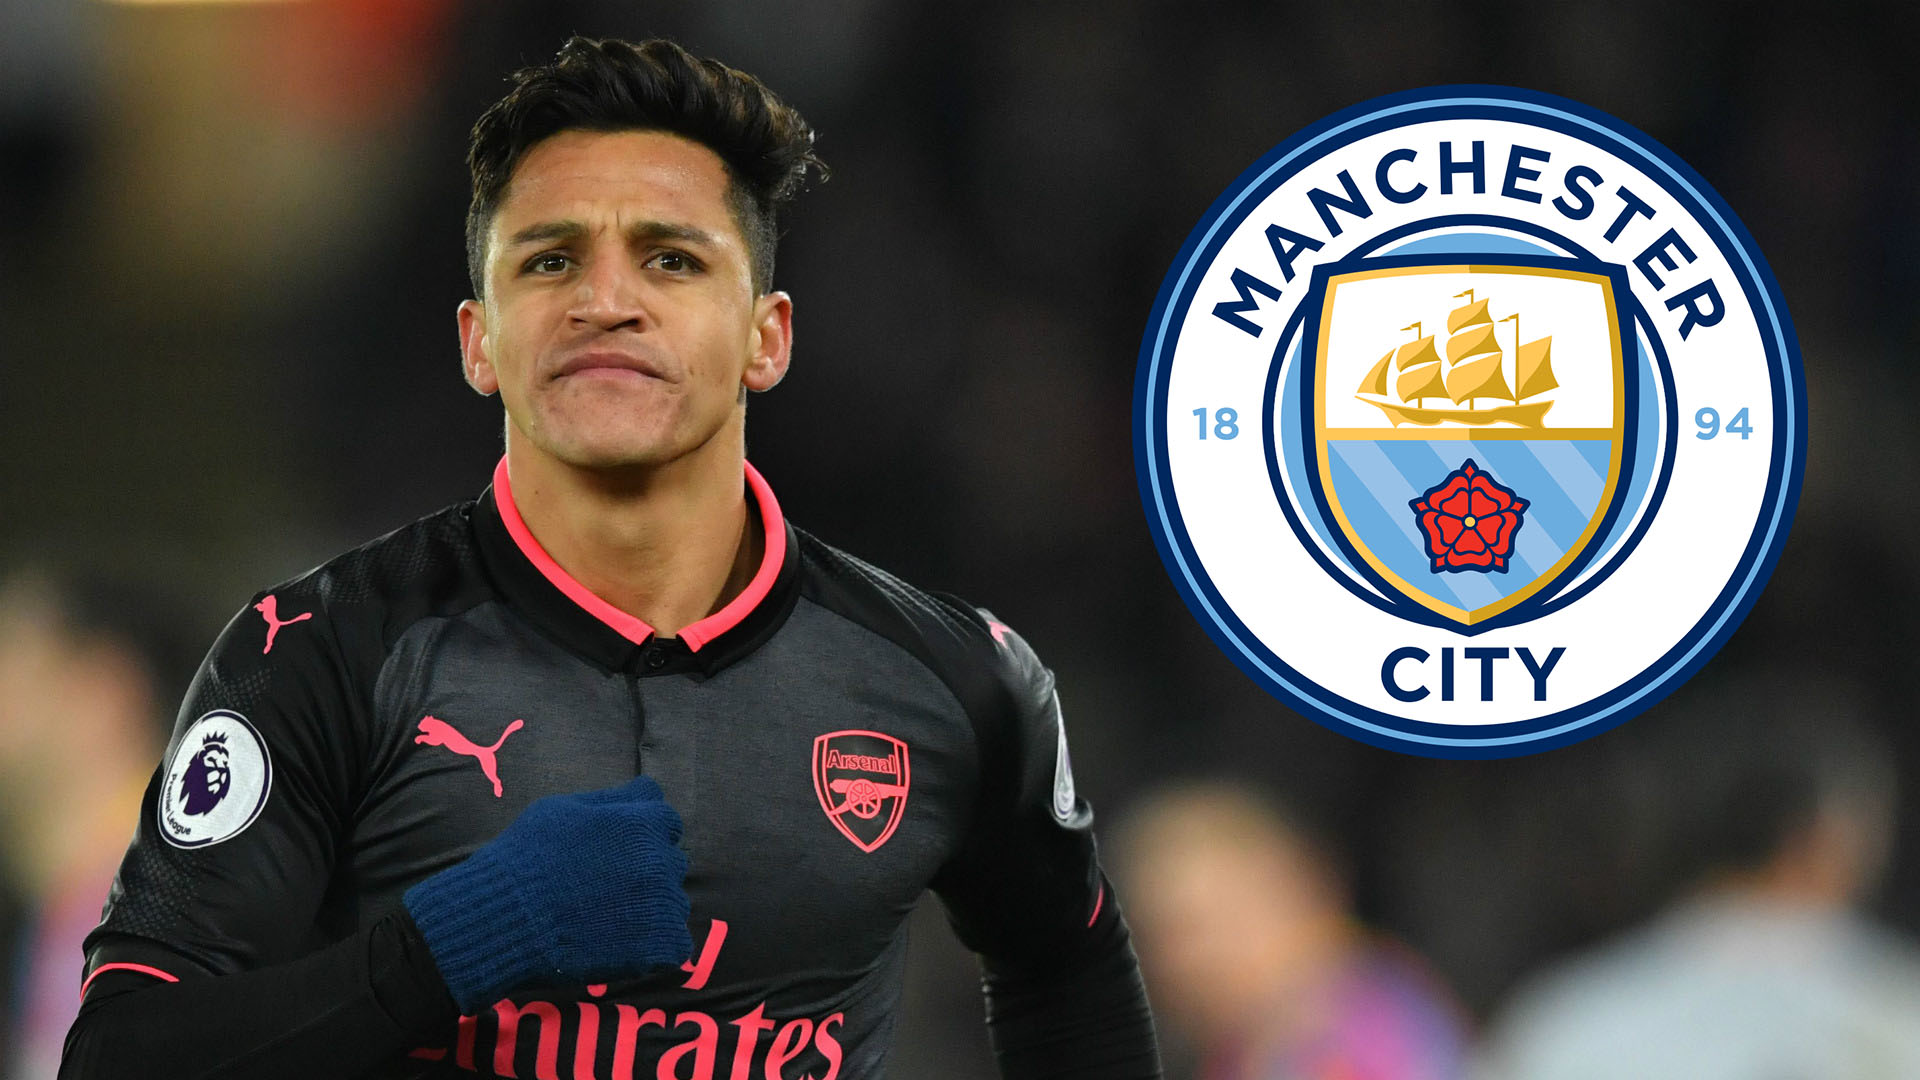 alexis sanchez - 02/1/2018 TRANSFER NEWS, DONE DEALS AND RUMOURS